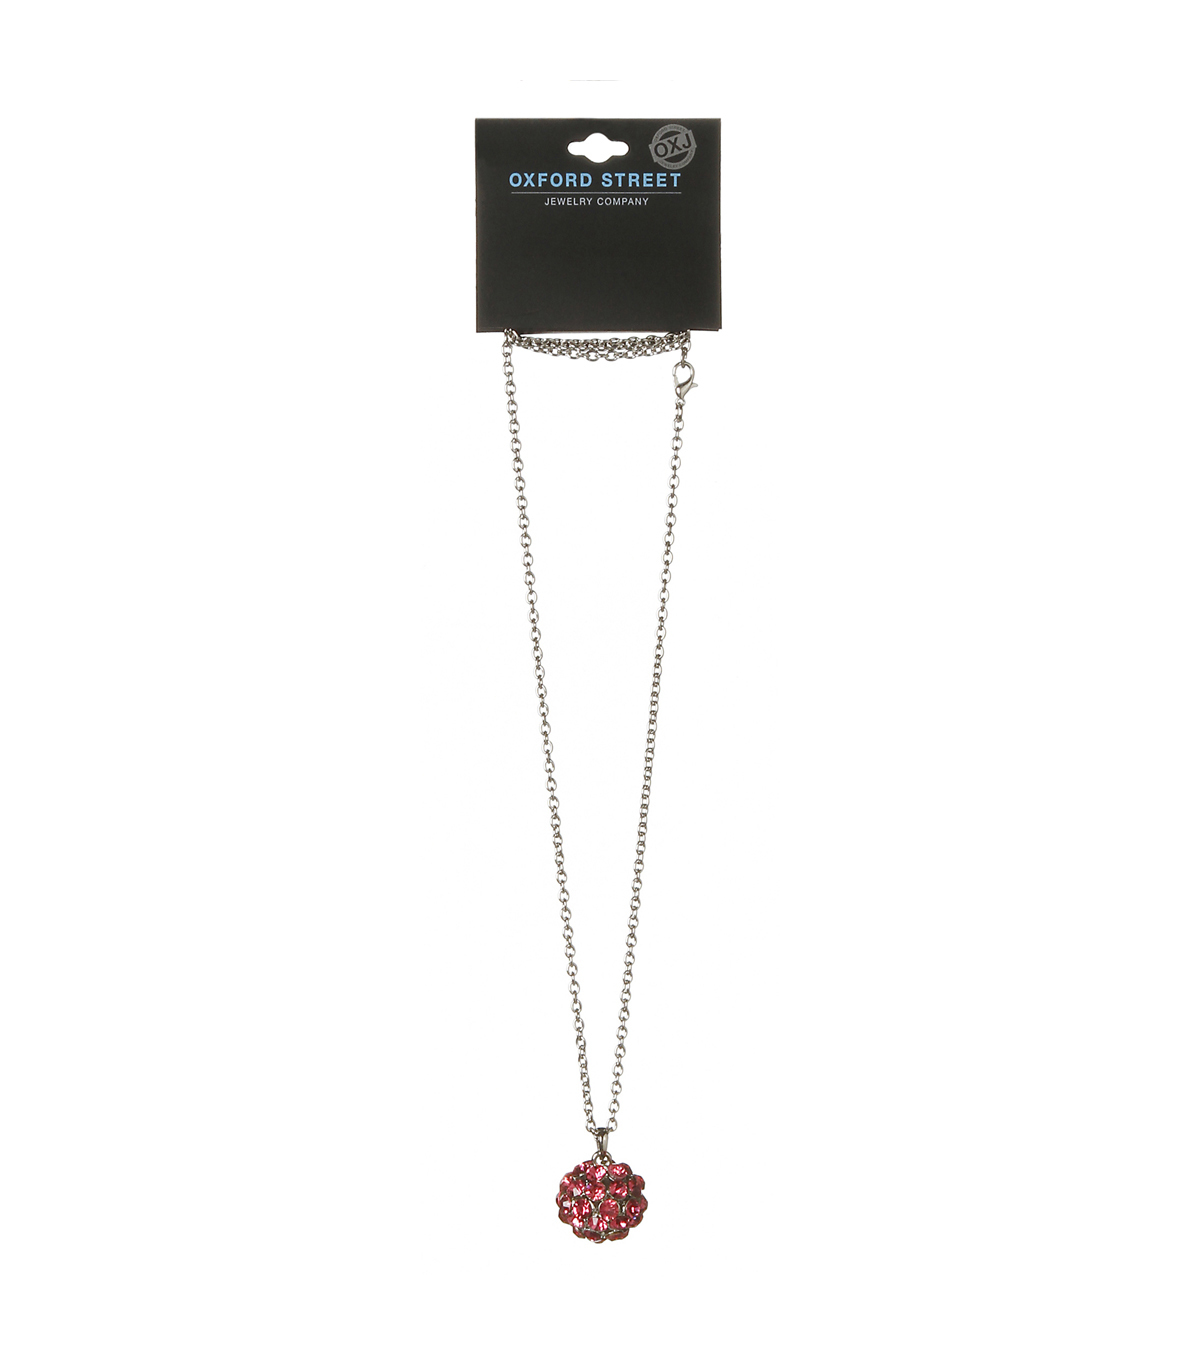 Oxford Street Jewelry Co. Rose Stone Ball Pendant Necklace